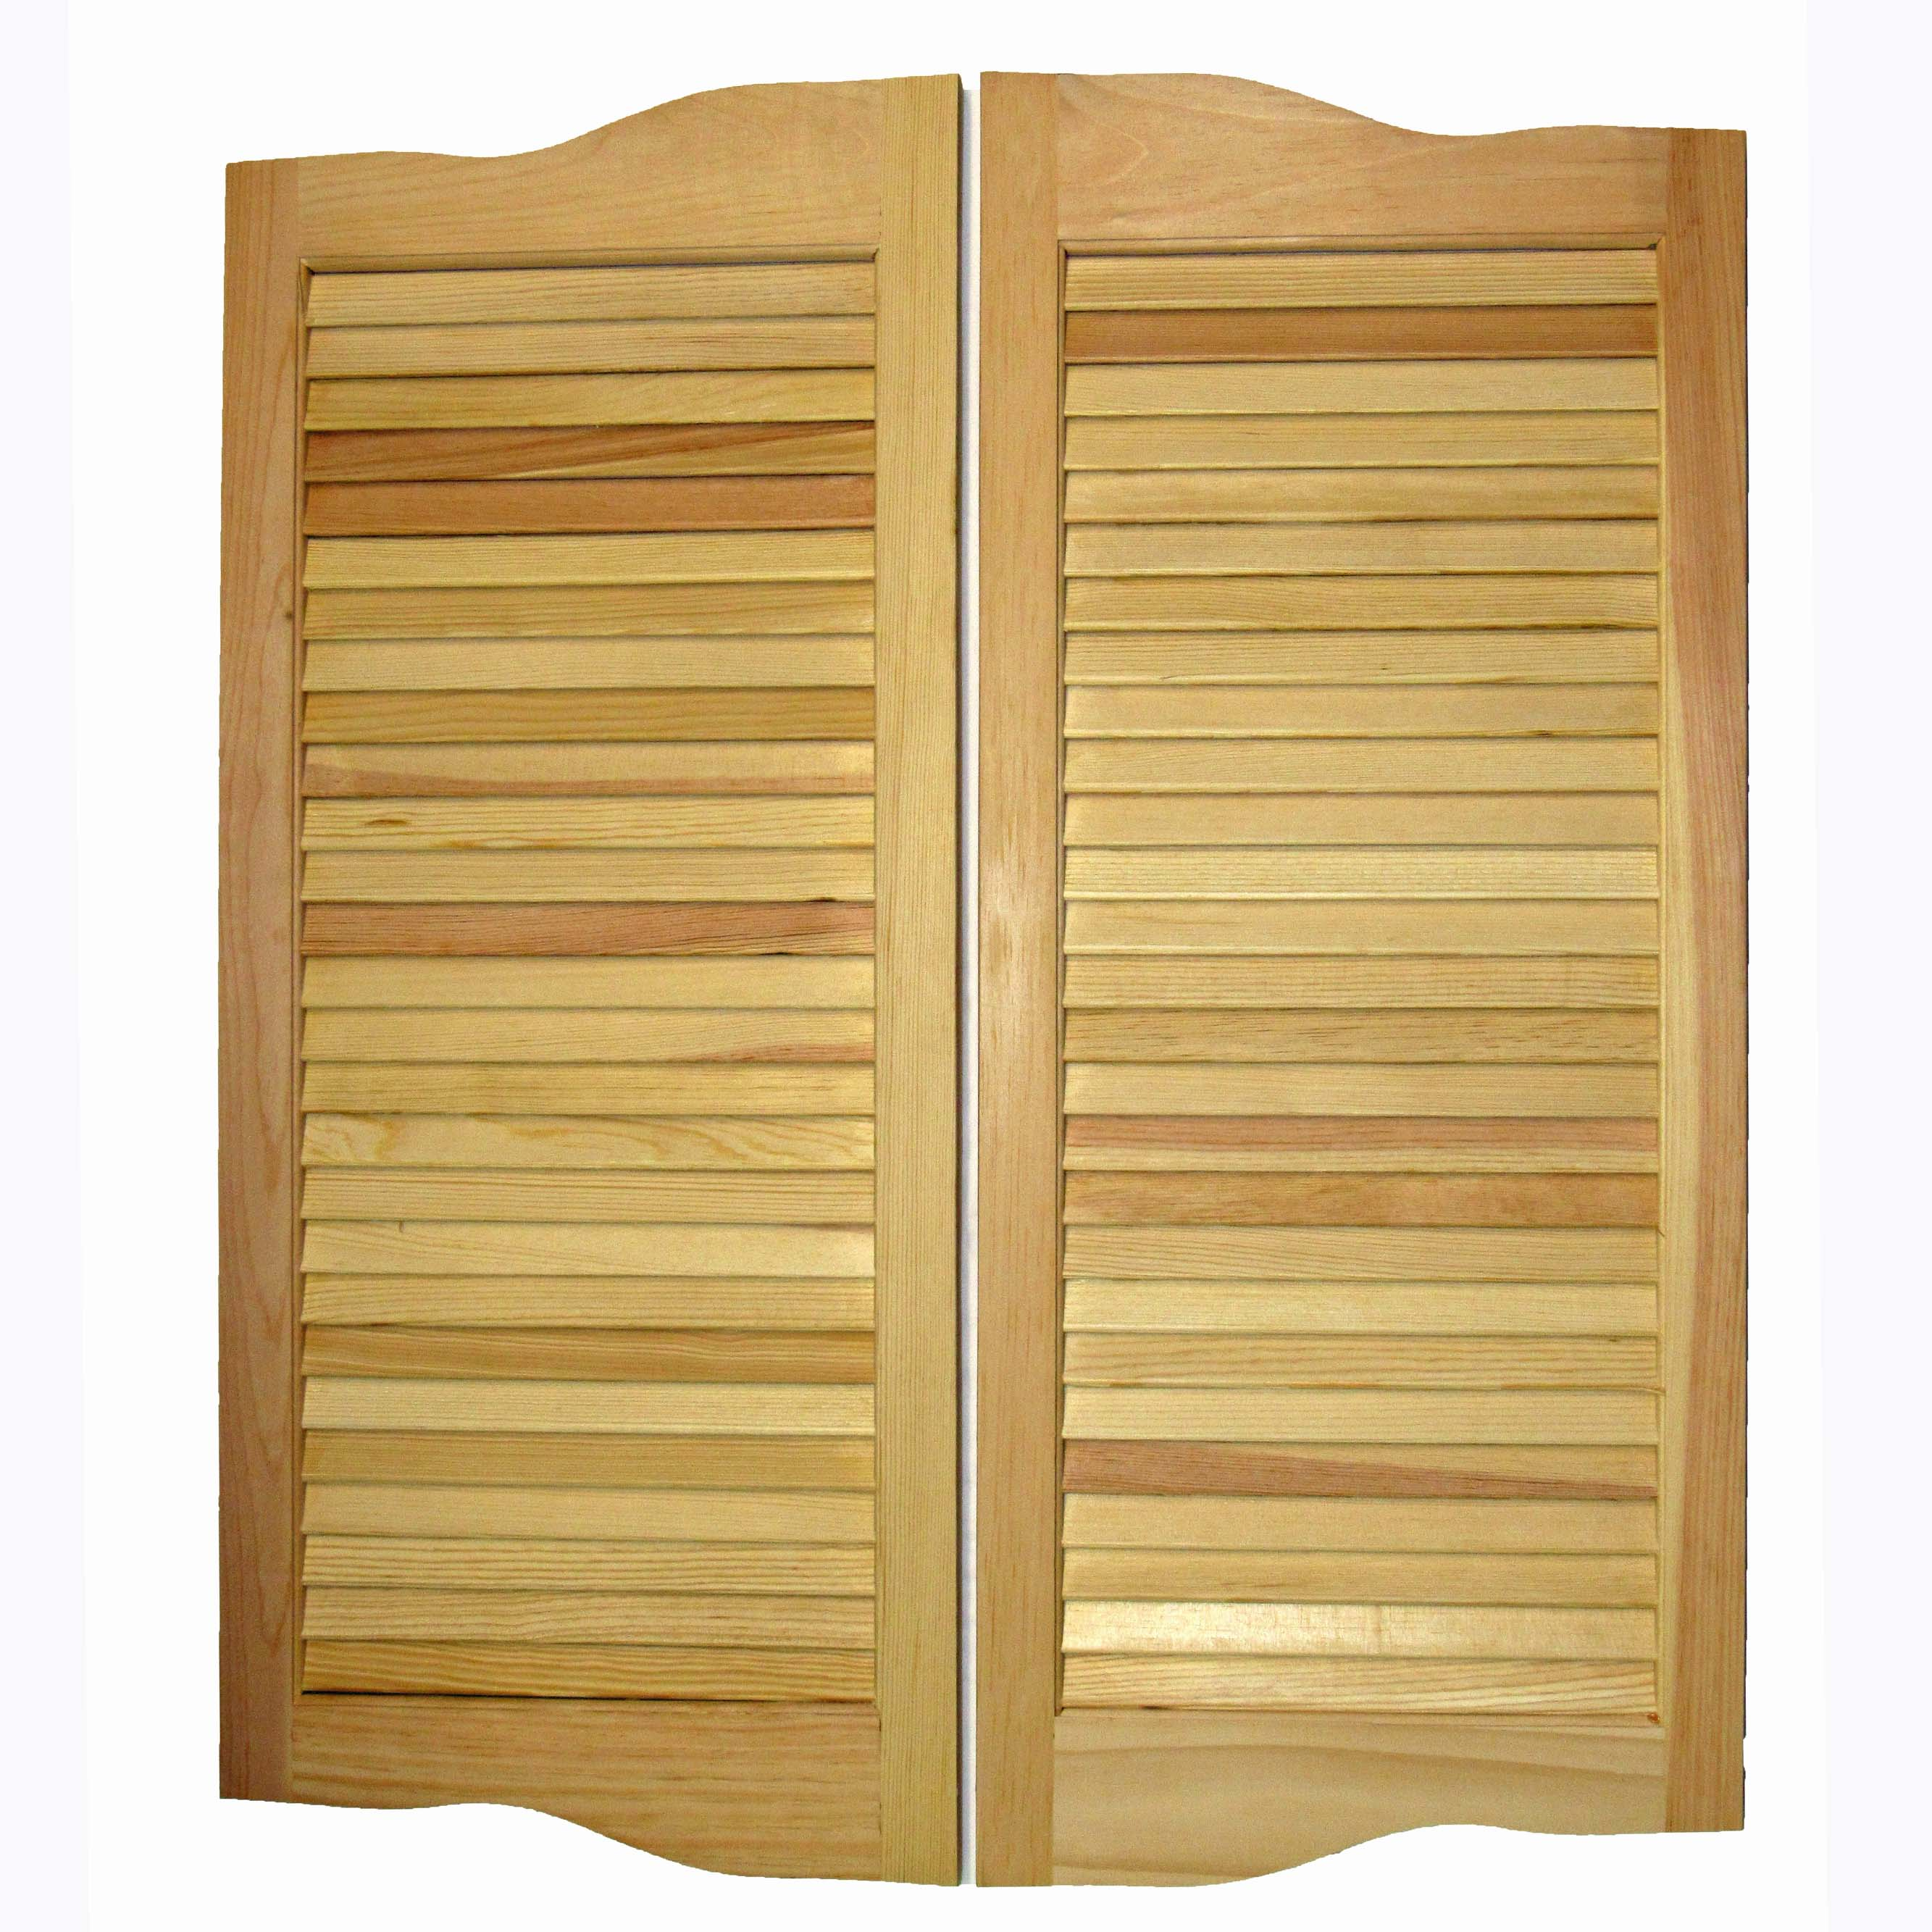 26673315194843922667 Louvered Cafe Doors Capitol City Lumber #4C2C0A Louvered  Door Panels 26672667 Wallpaper With 2667x2667